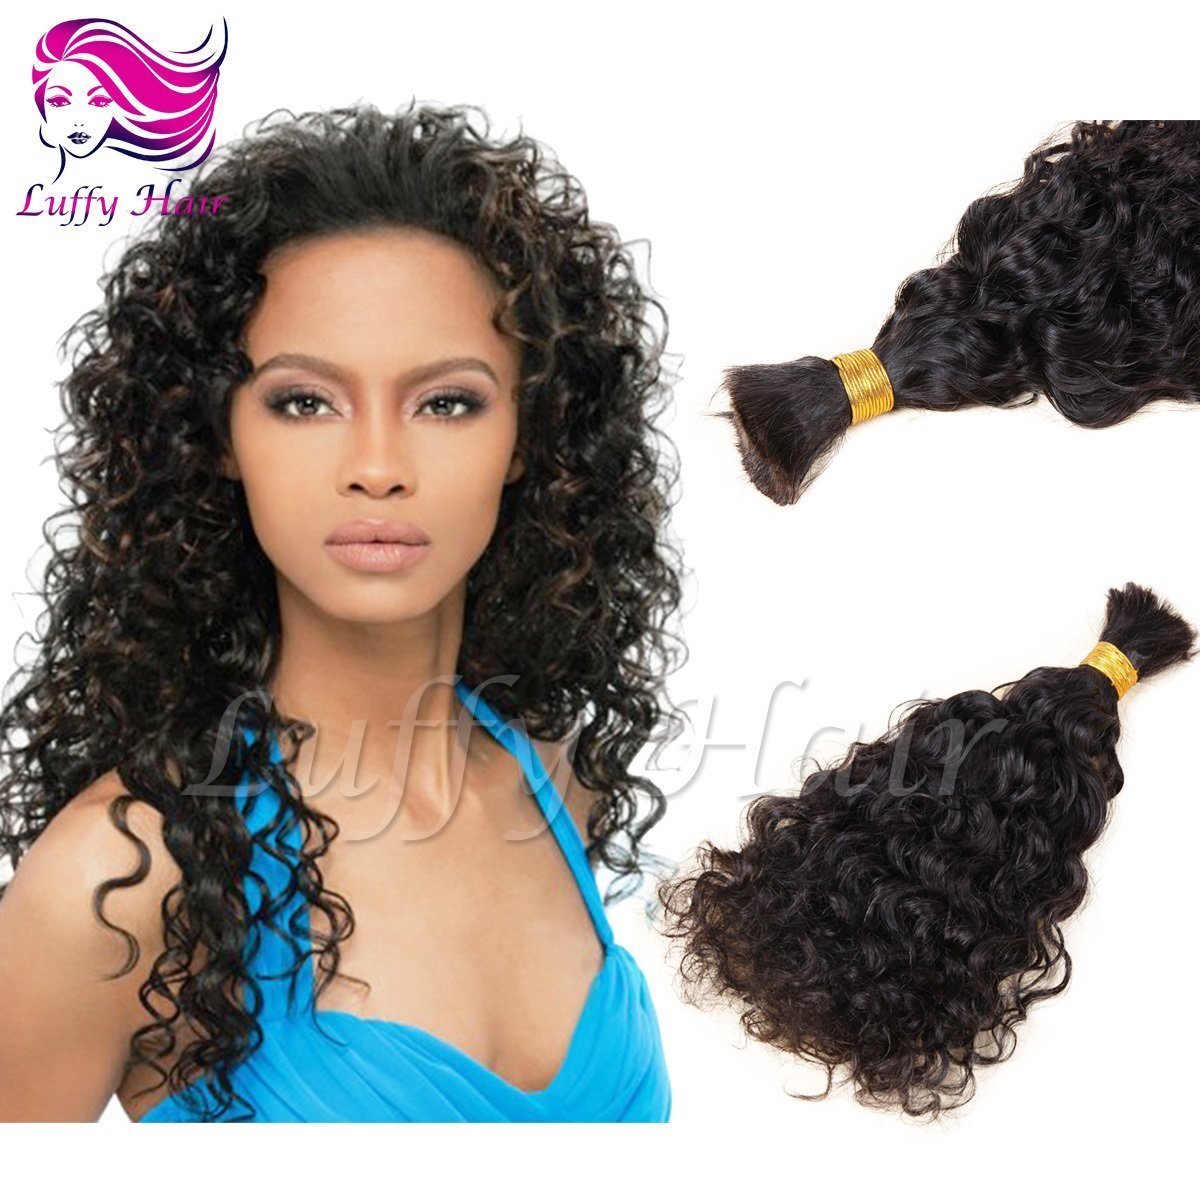 8A Virgin Human Hair Curly Braiding Hair Bulk - KBL001